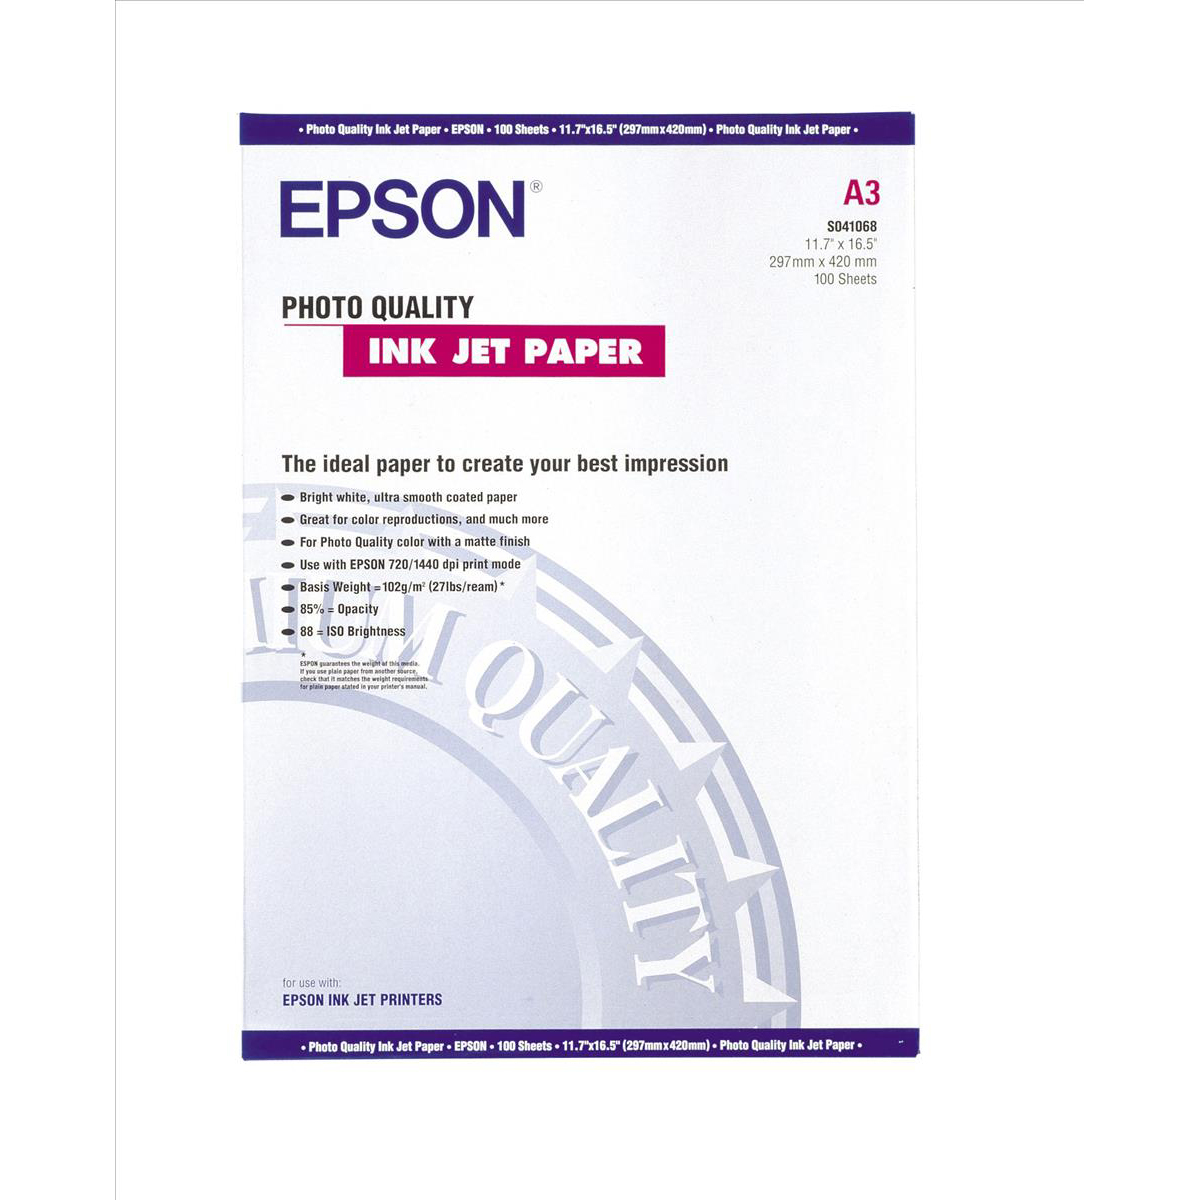 Epson Photo Quality Inkjet Paper Matt 102gsm Max.1440dpi A3 Ref C13S041068 100 Sheets